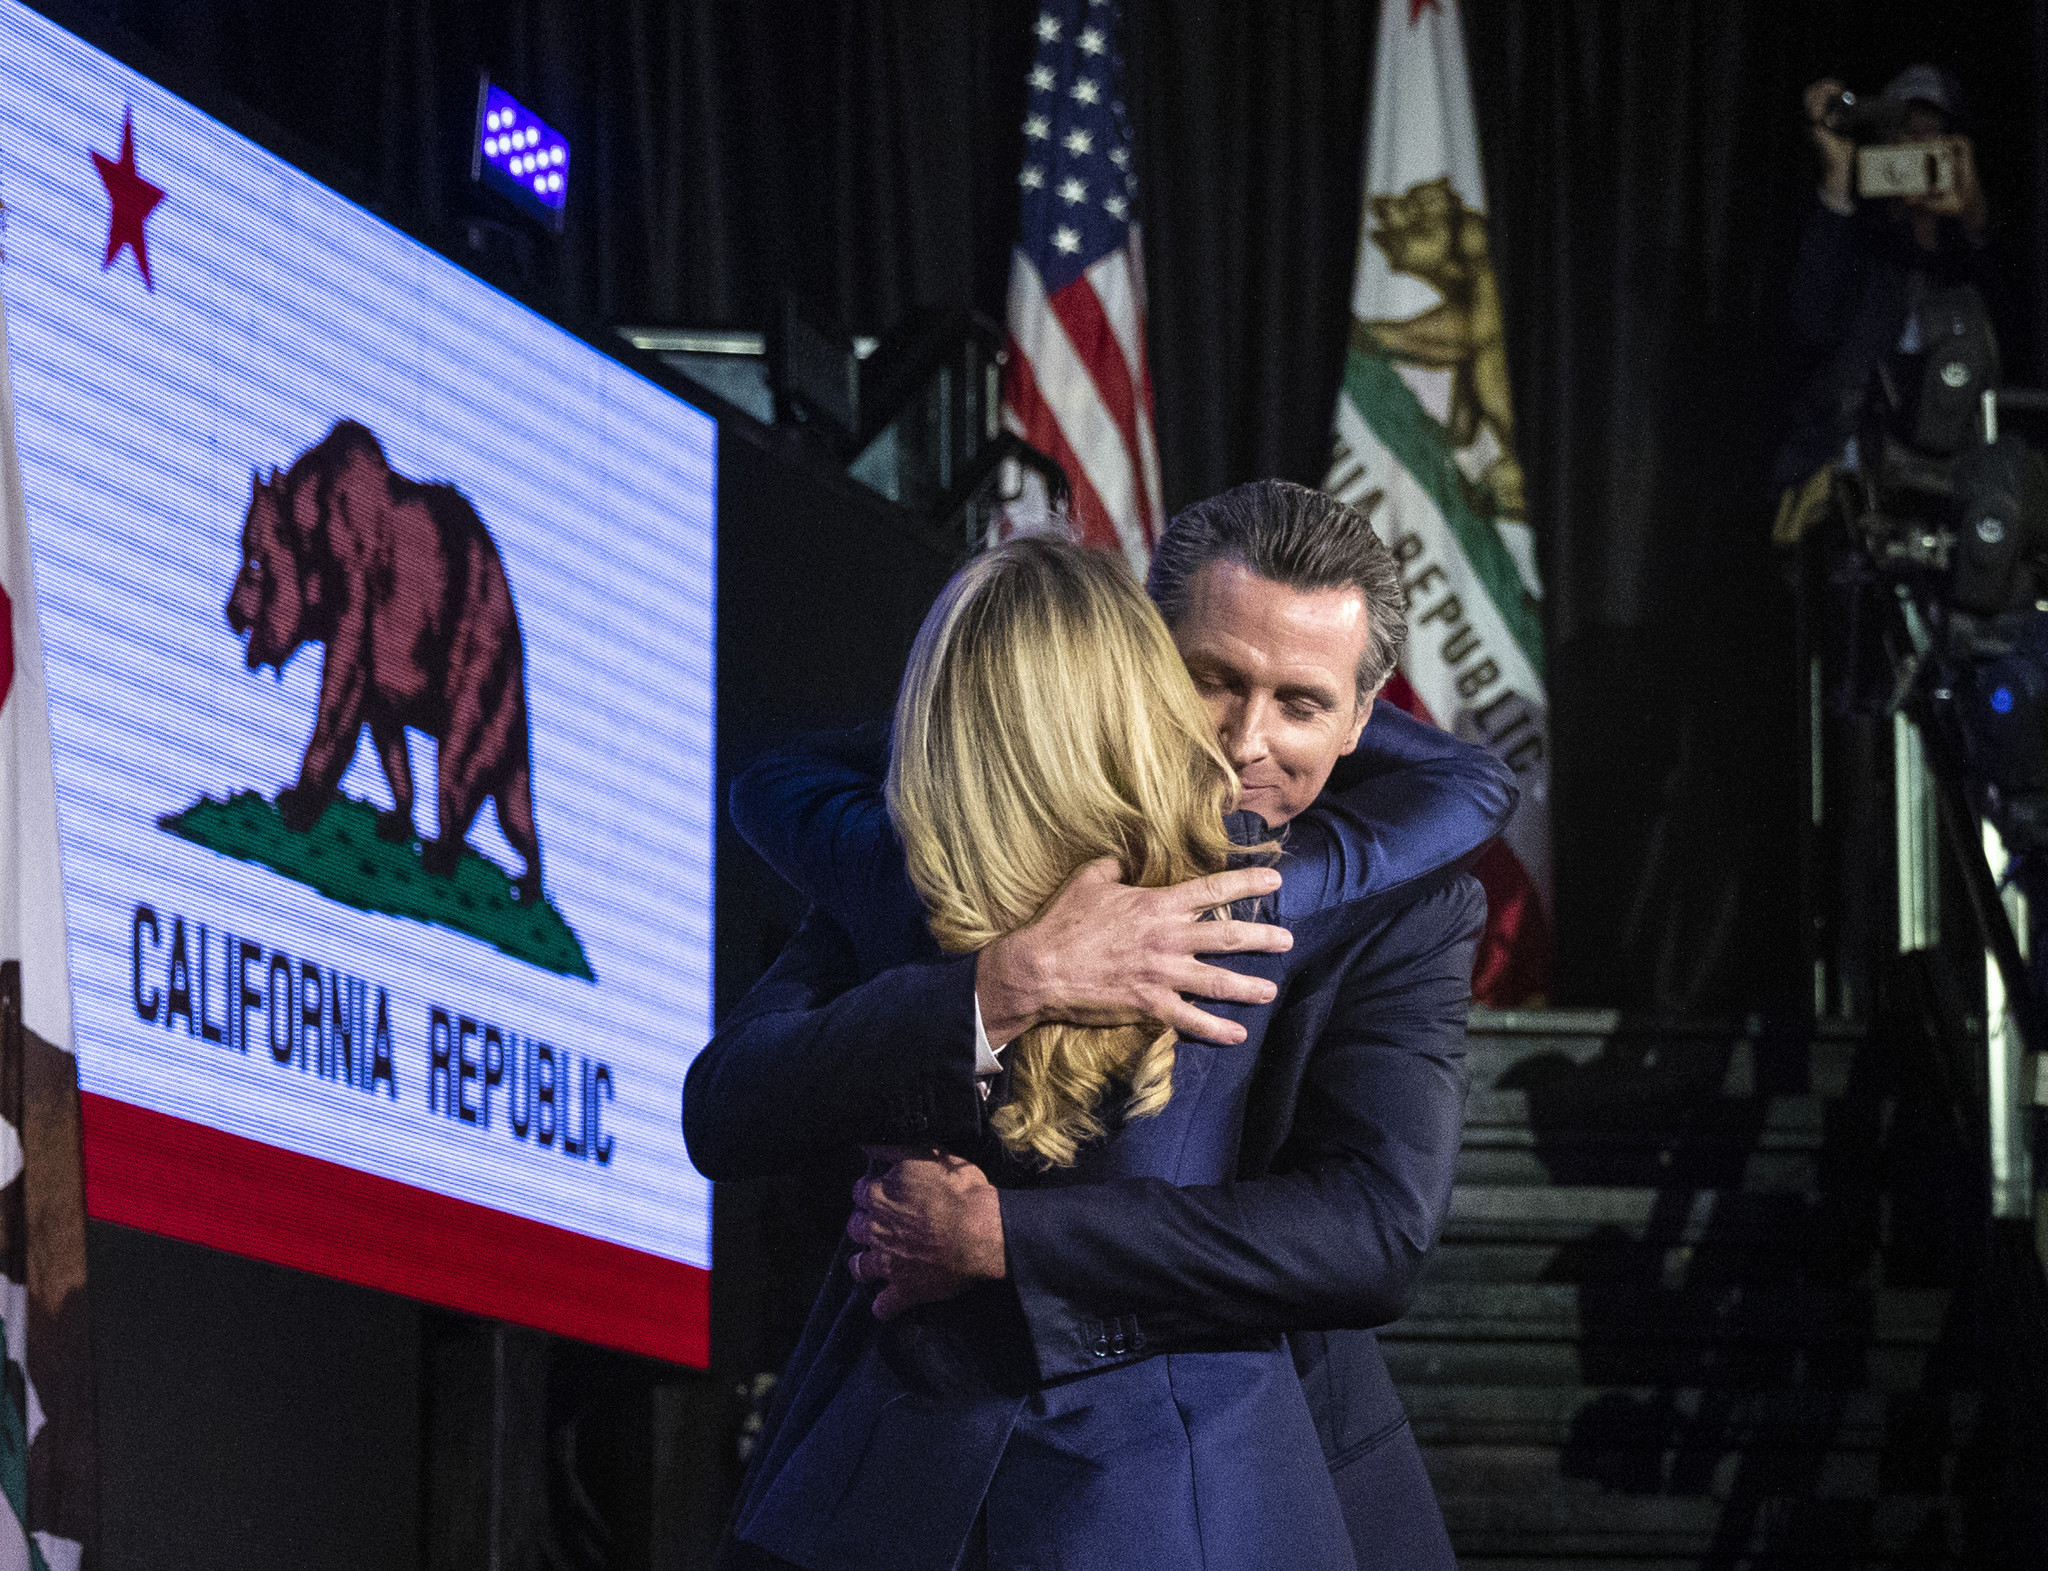 LOS ANGELES, CA --NOVEMBER 07, 2018 --Joined by his wife Jennifer Siebel Newsom, Democrat Gavin News